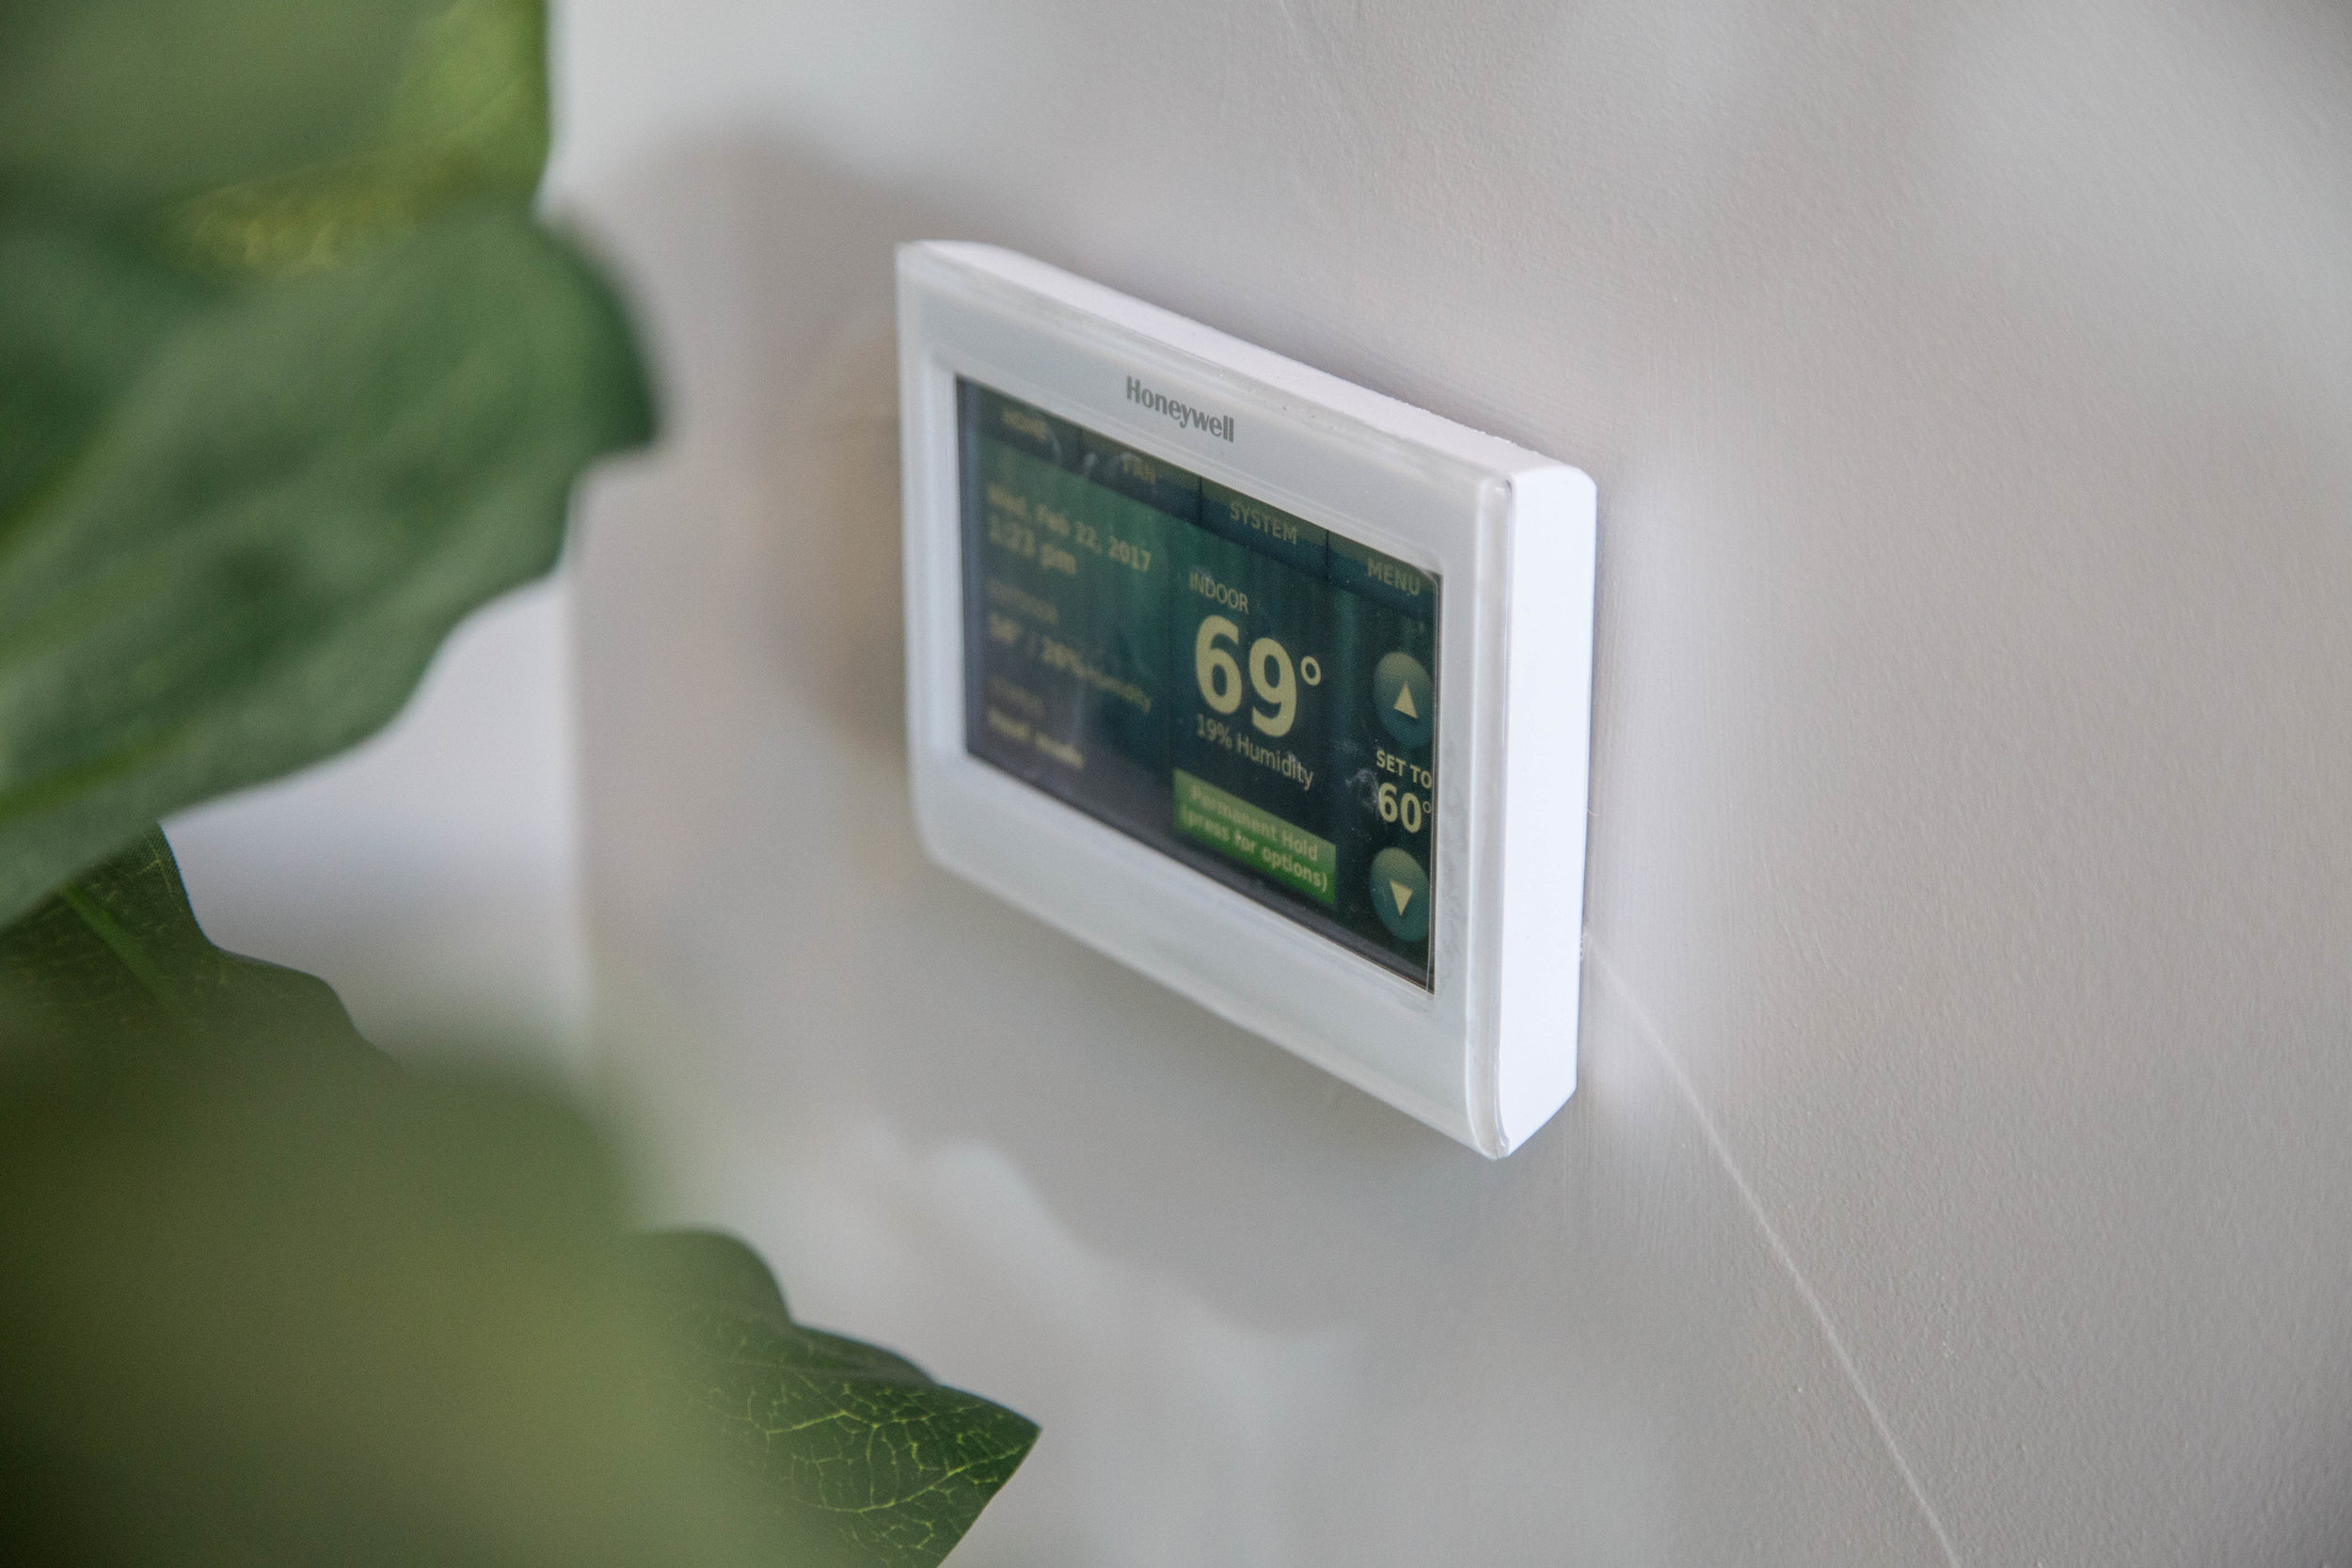 Honeywell Thermostat seamlessly syncs with Intuity by Legrand